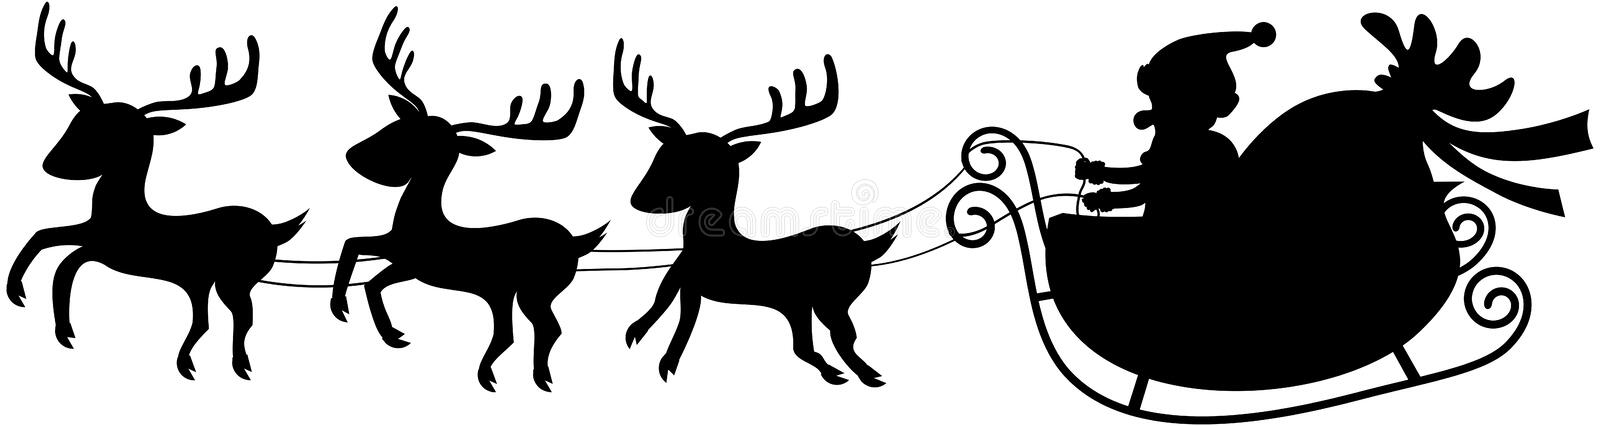 Santa in his Christmas Sled or Sleigh Silhouette royalty free illustration